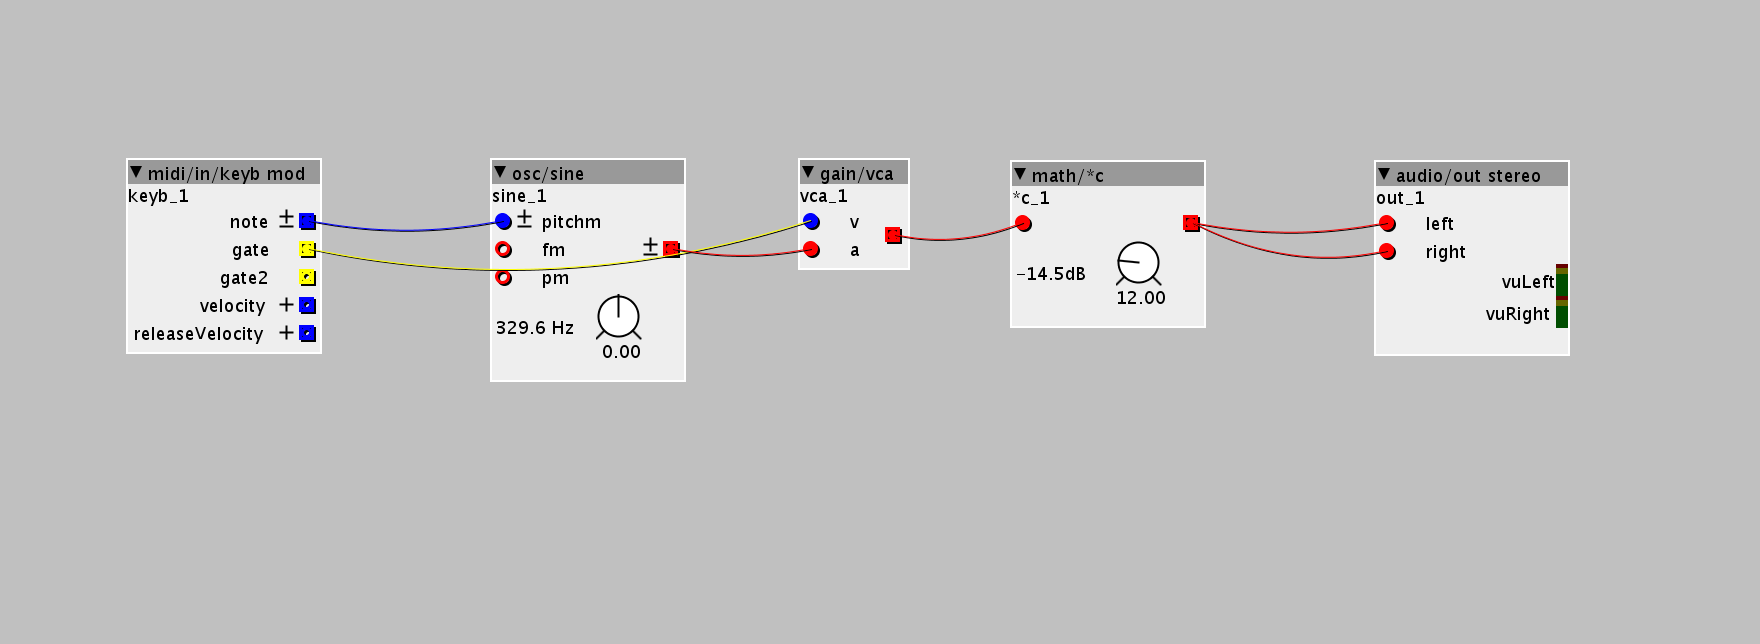 Figure 1.6 — All objects are connected.